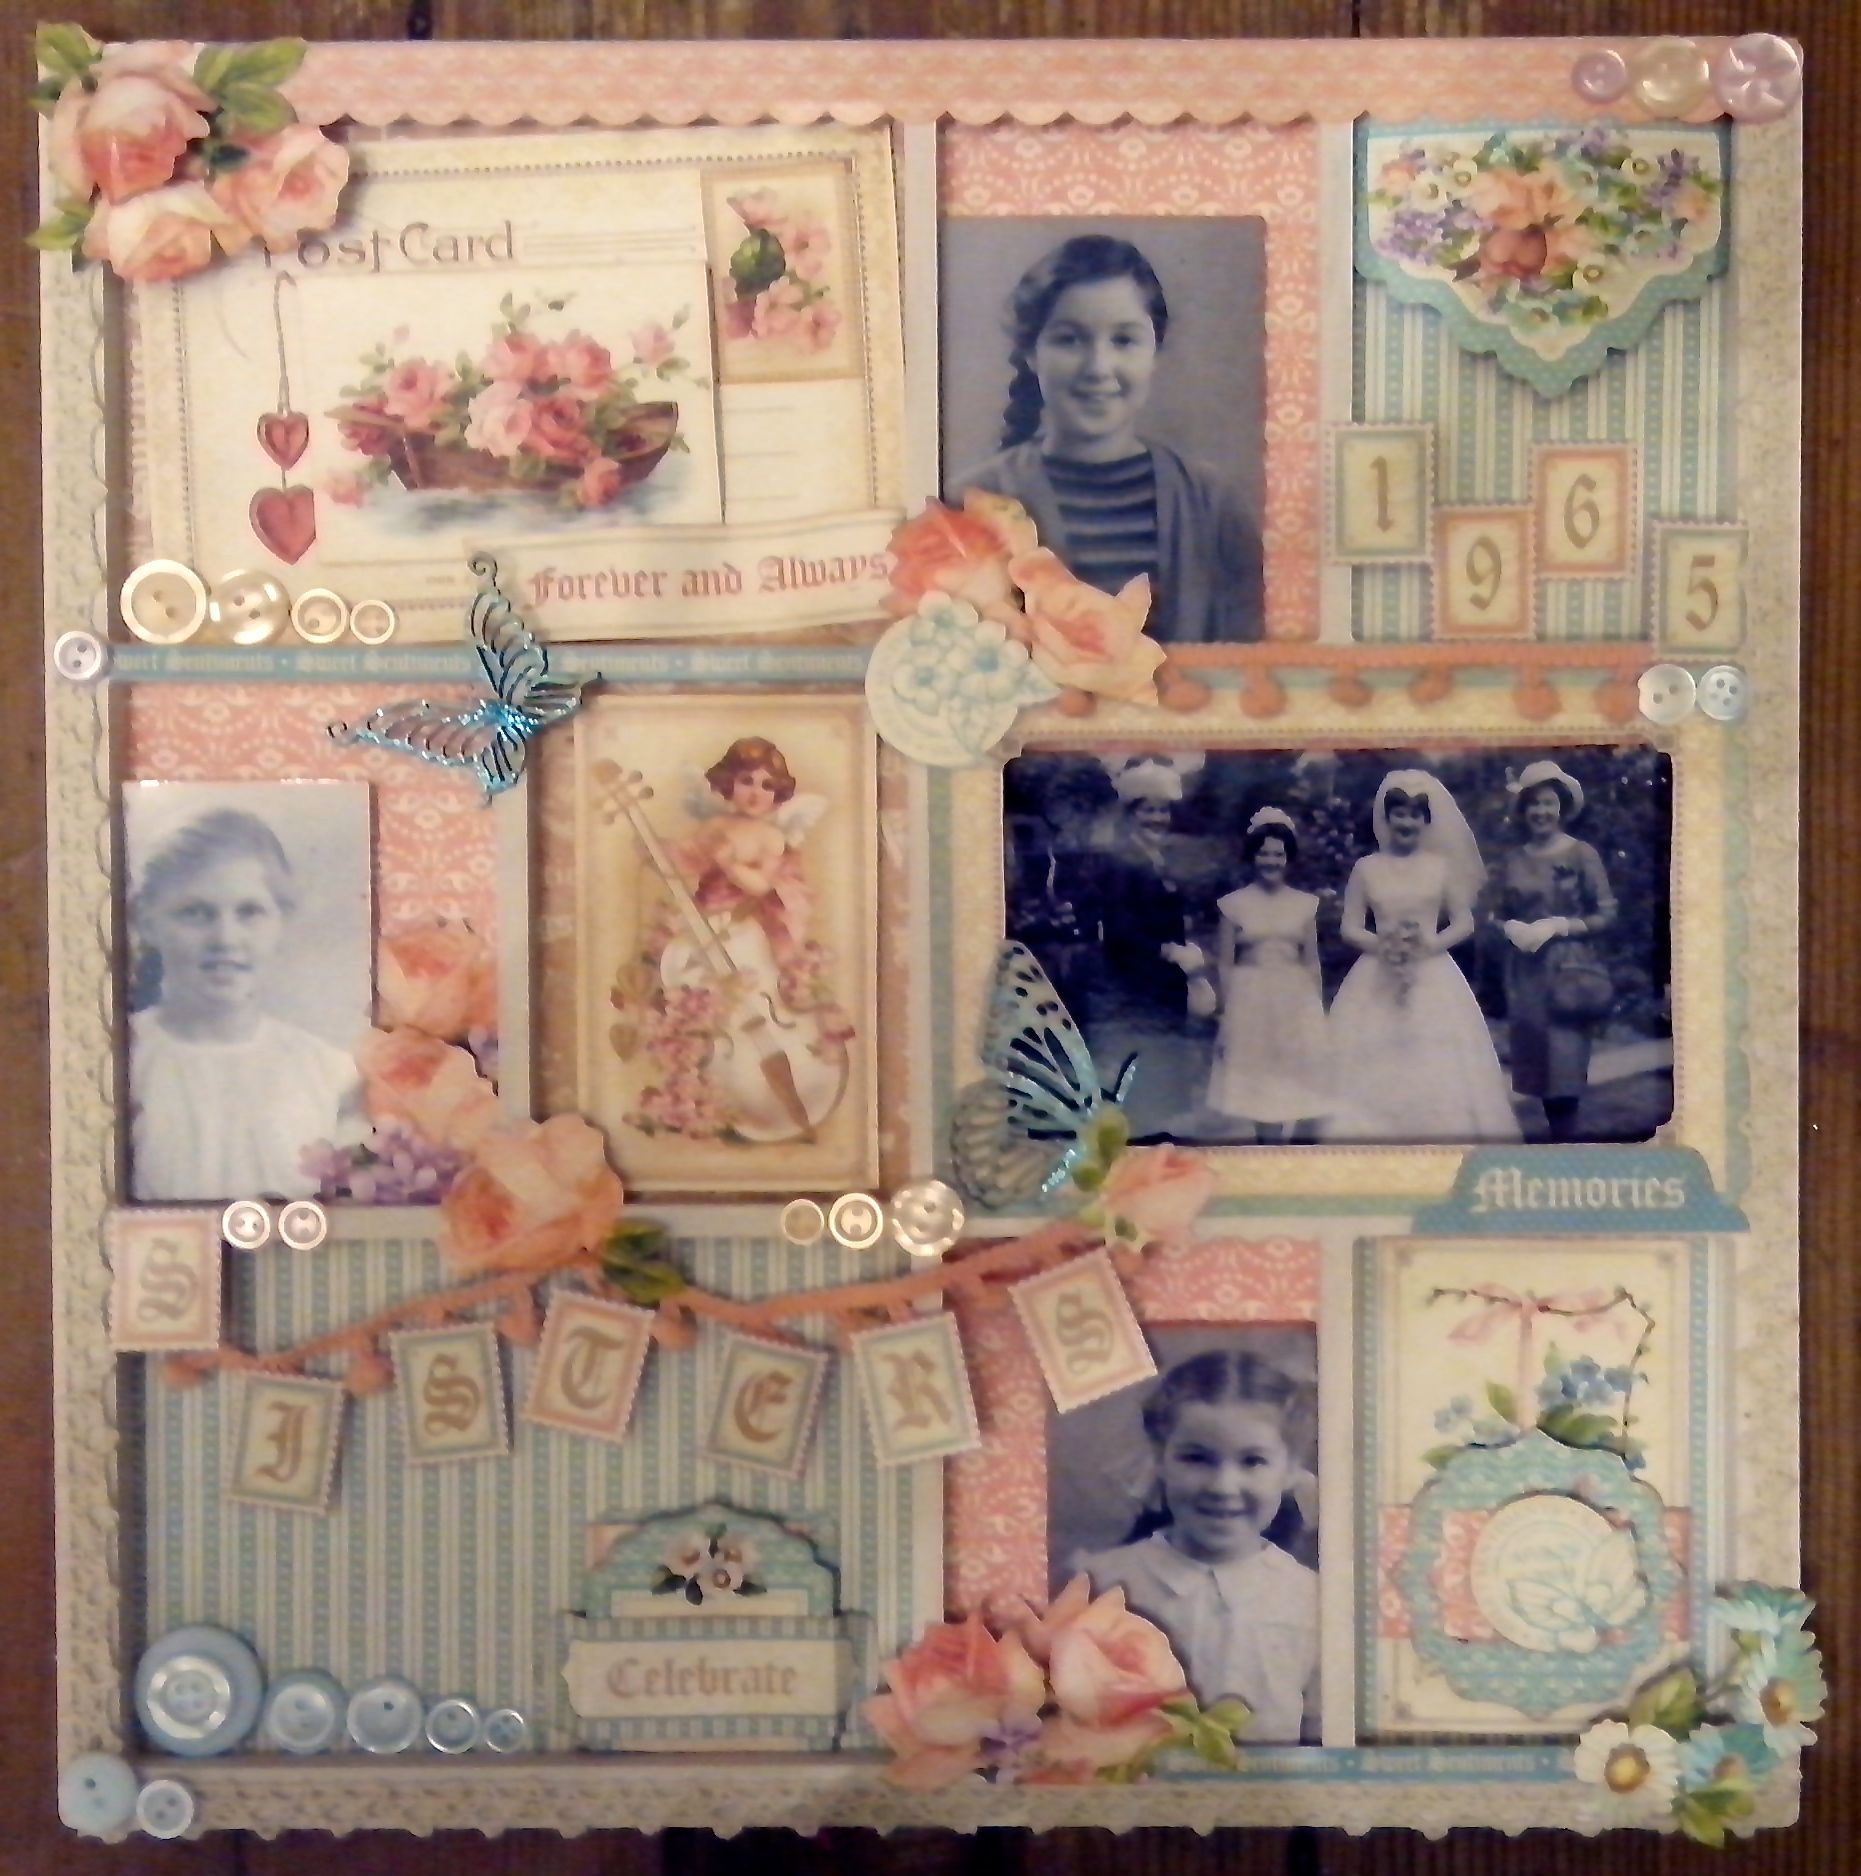 Vintage style scrapbook ideas - 1965 Sisters Feminine Heritage Shadow Box Style Page Created With Sweet Sentiments Picture Frame Heritage Scrapbookingscrapbooking Layoutsdigital